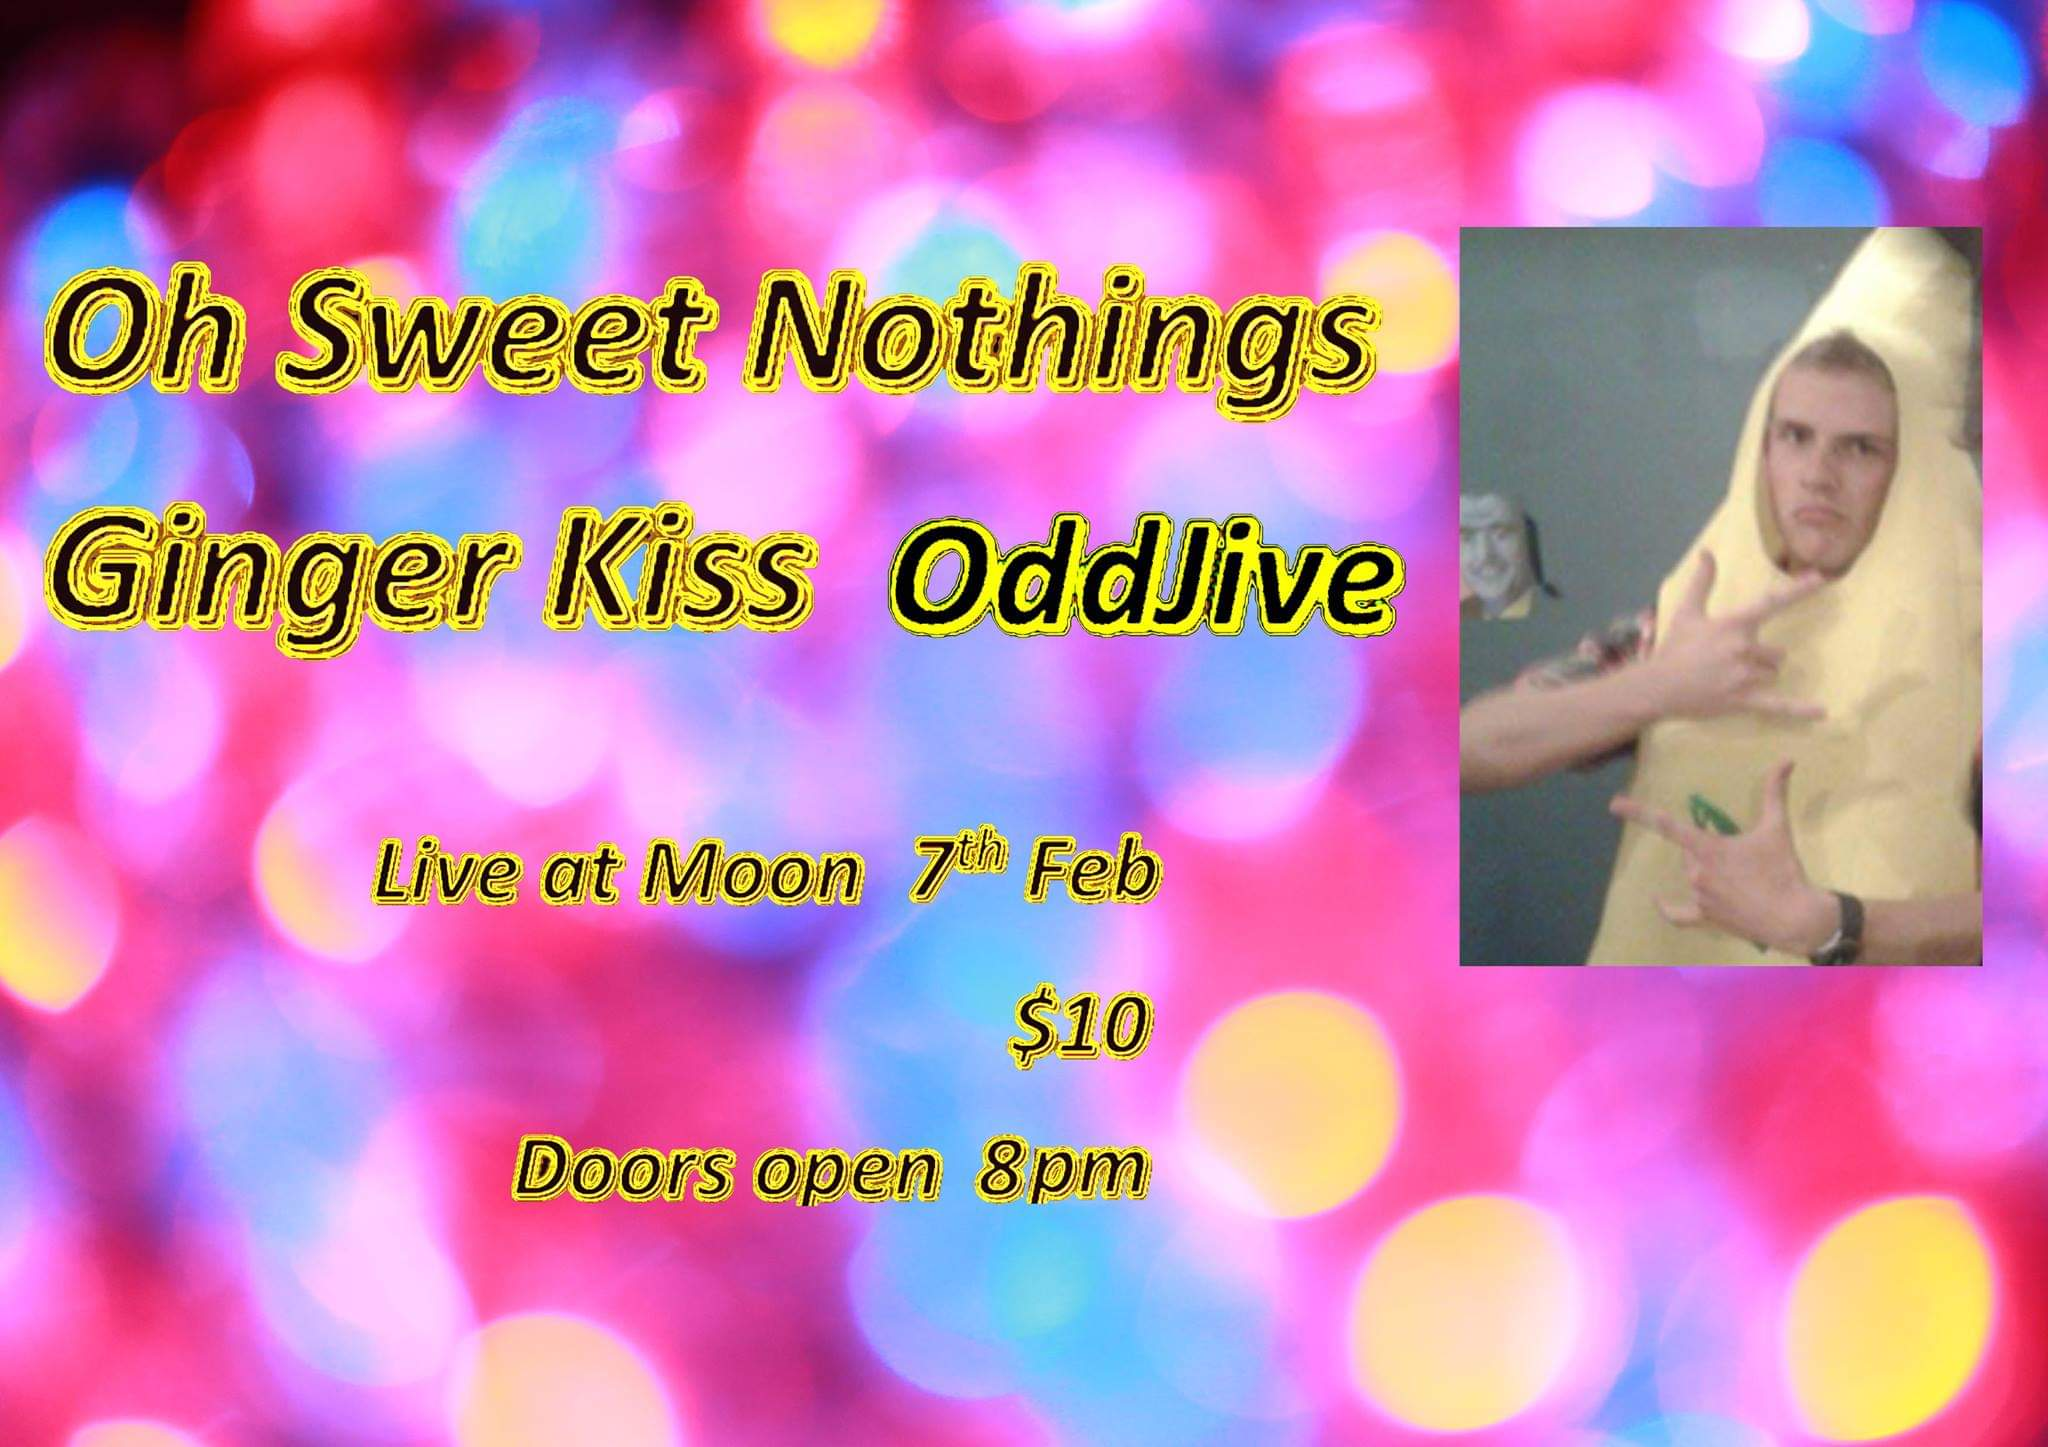 Oddjive, Oh Sweet Nothings, Ginger Kiss